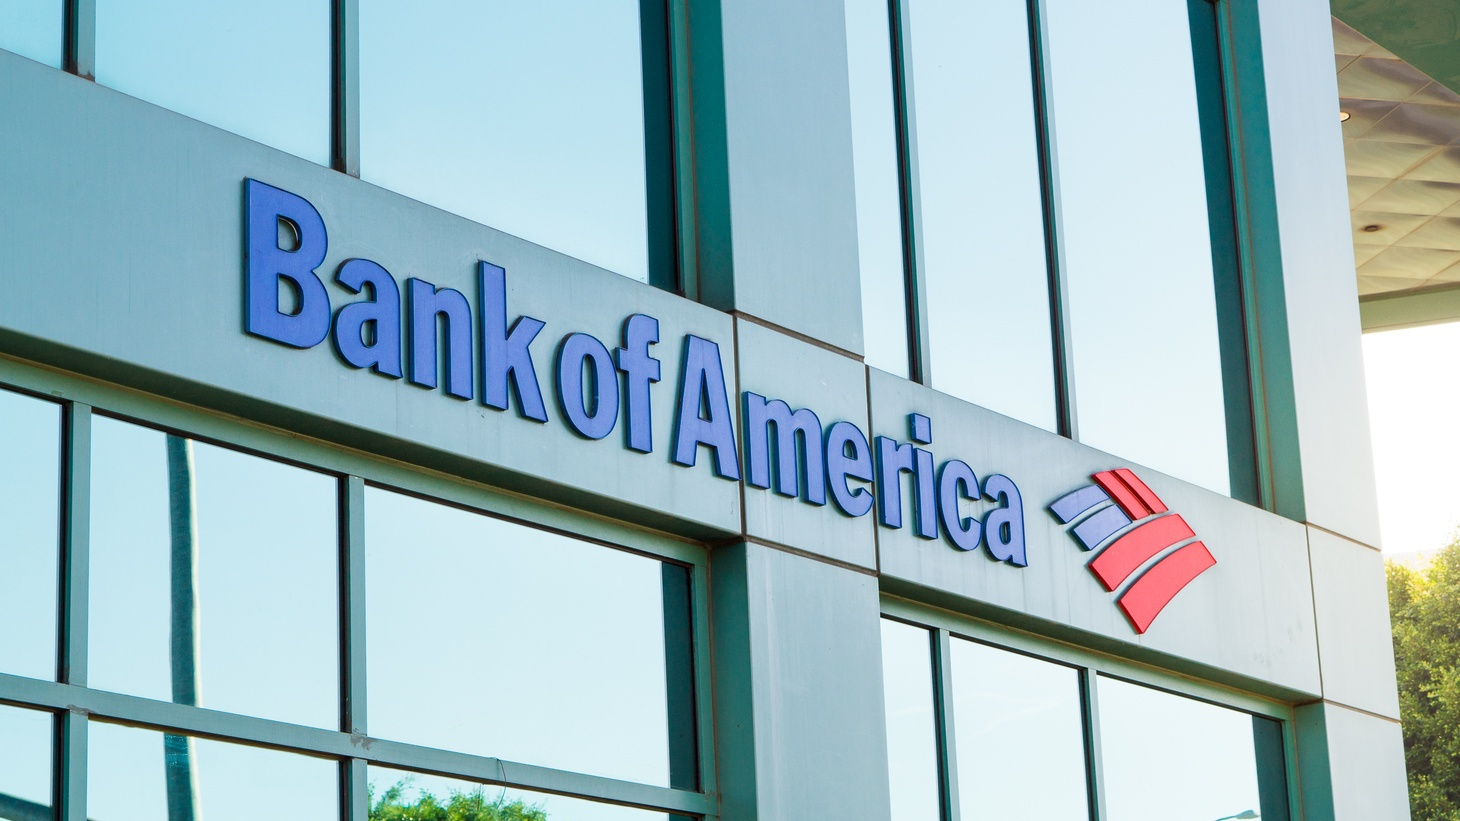 California's Employment Development Department just renewed its partnership with Bank of America, but the bank wants out immediately.